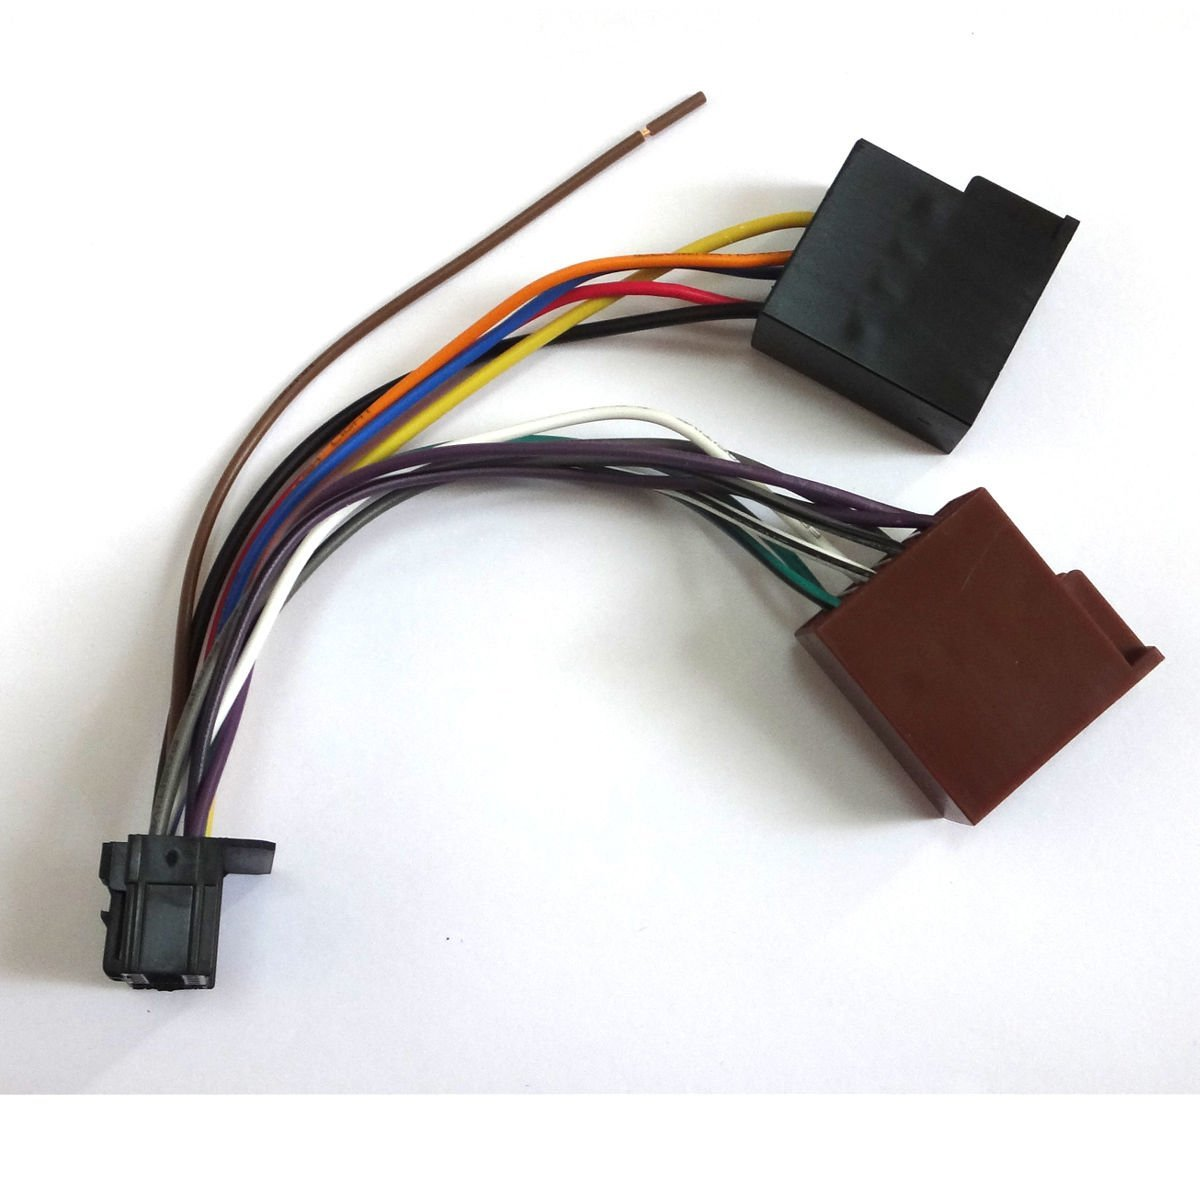 hight resolution of conpus car stereo radio iso wiring harness connector adaptor cable loom pioneer 16 pin ad118